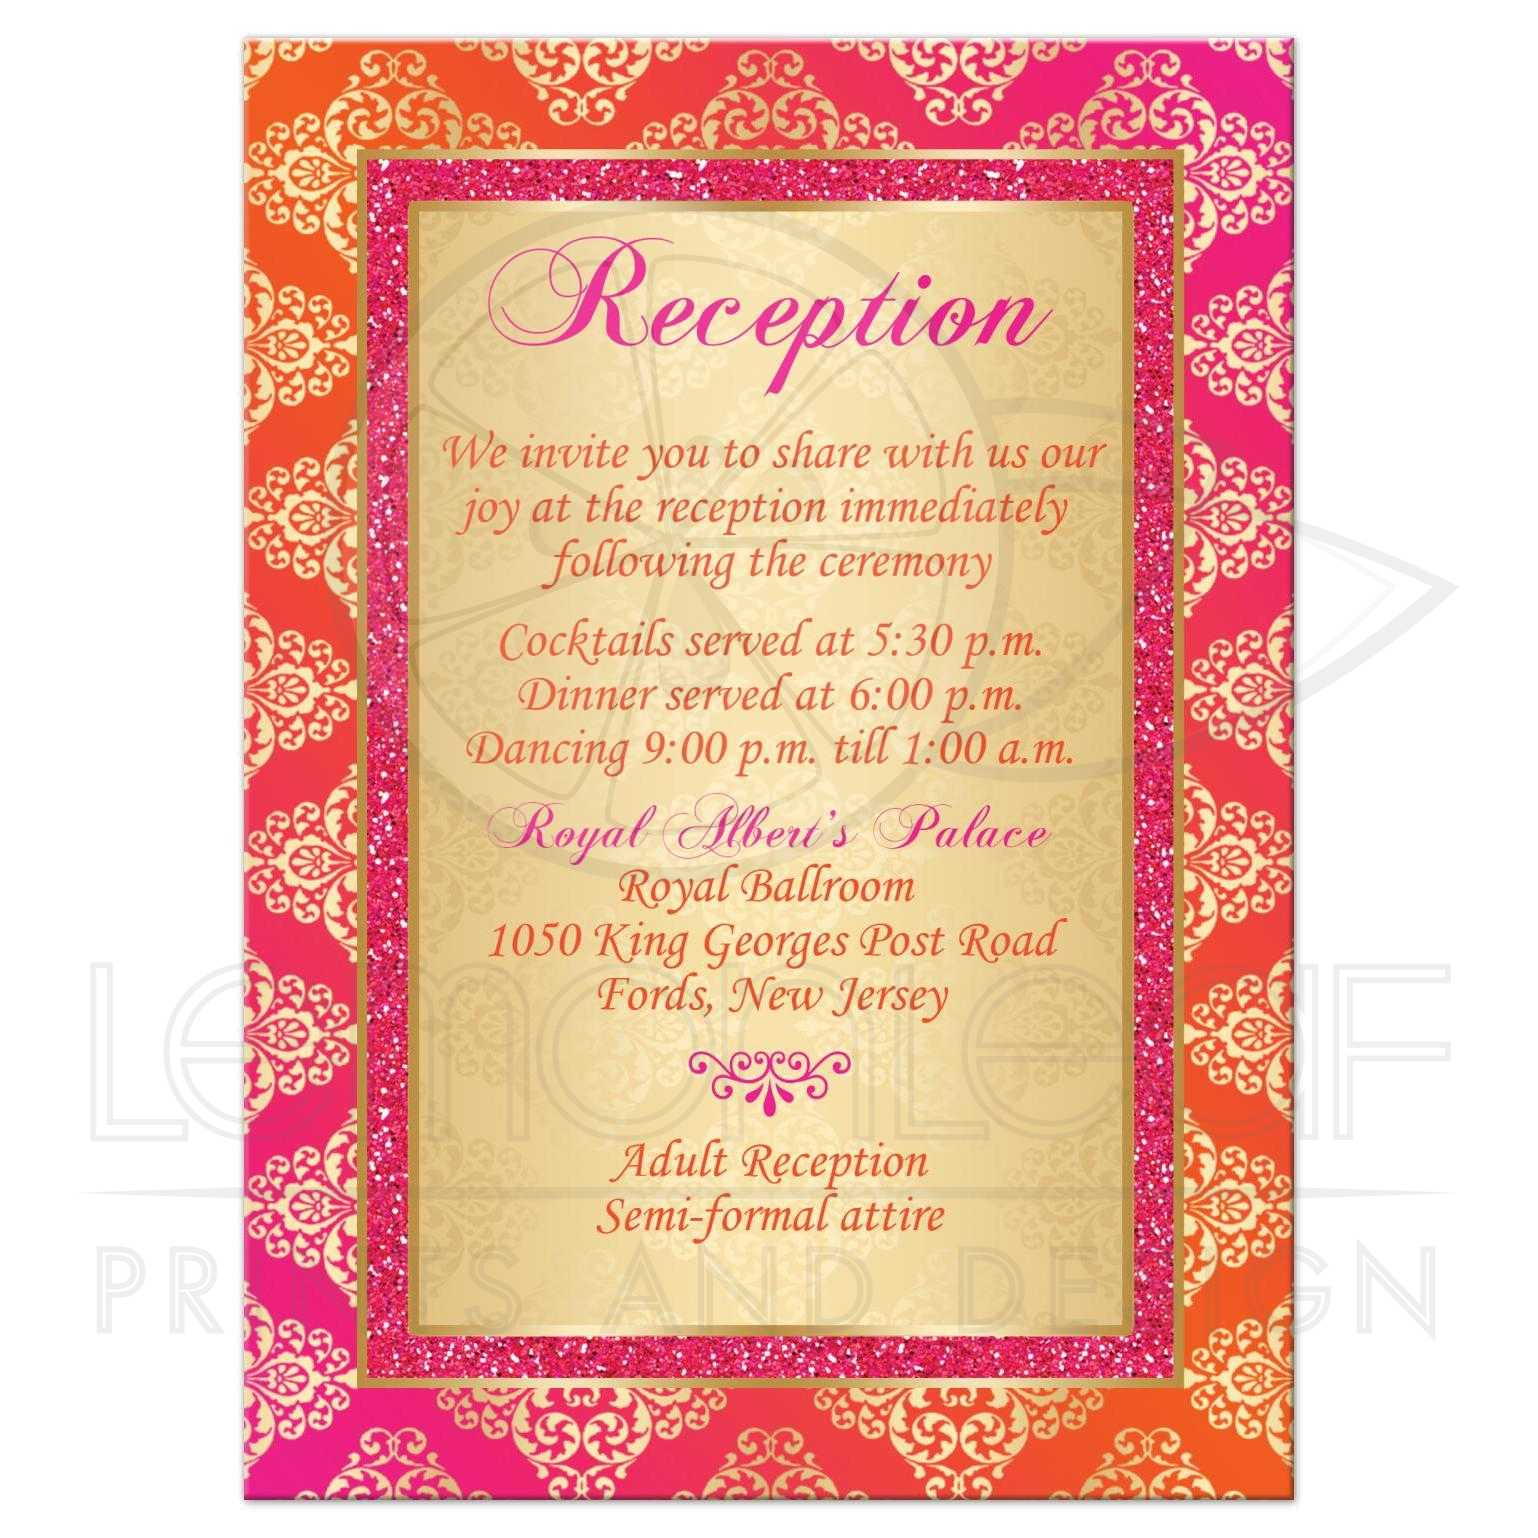 Wedding Enclosure Card | Orange, Fuchsia, Gold Damask, Scroll | Faux ...